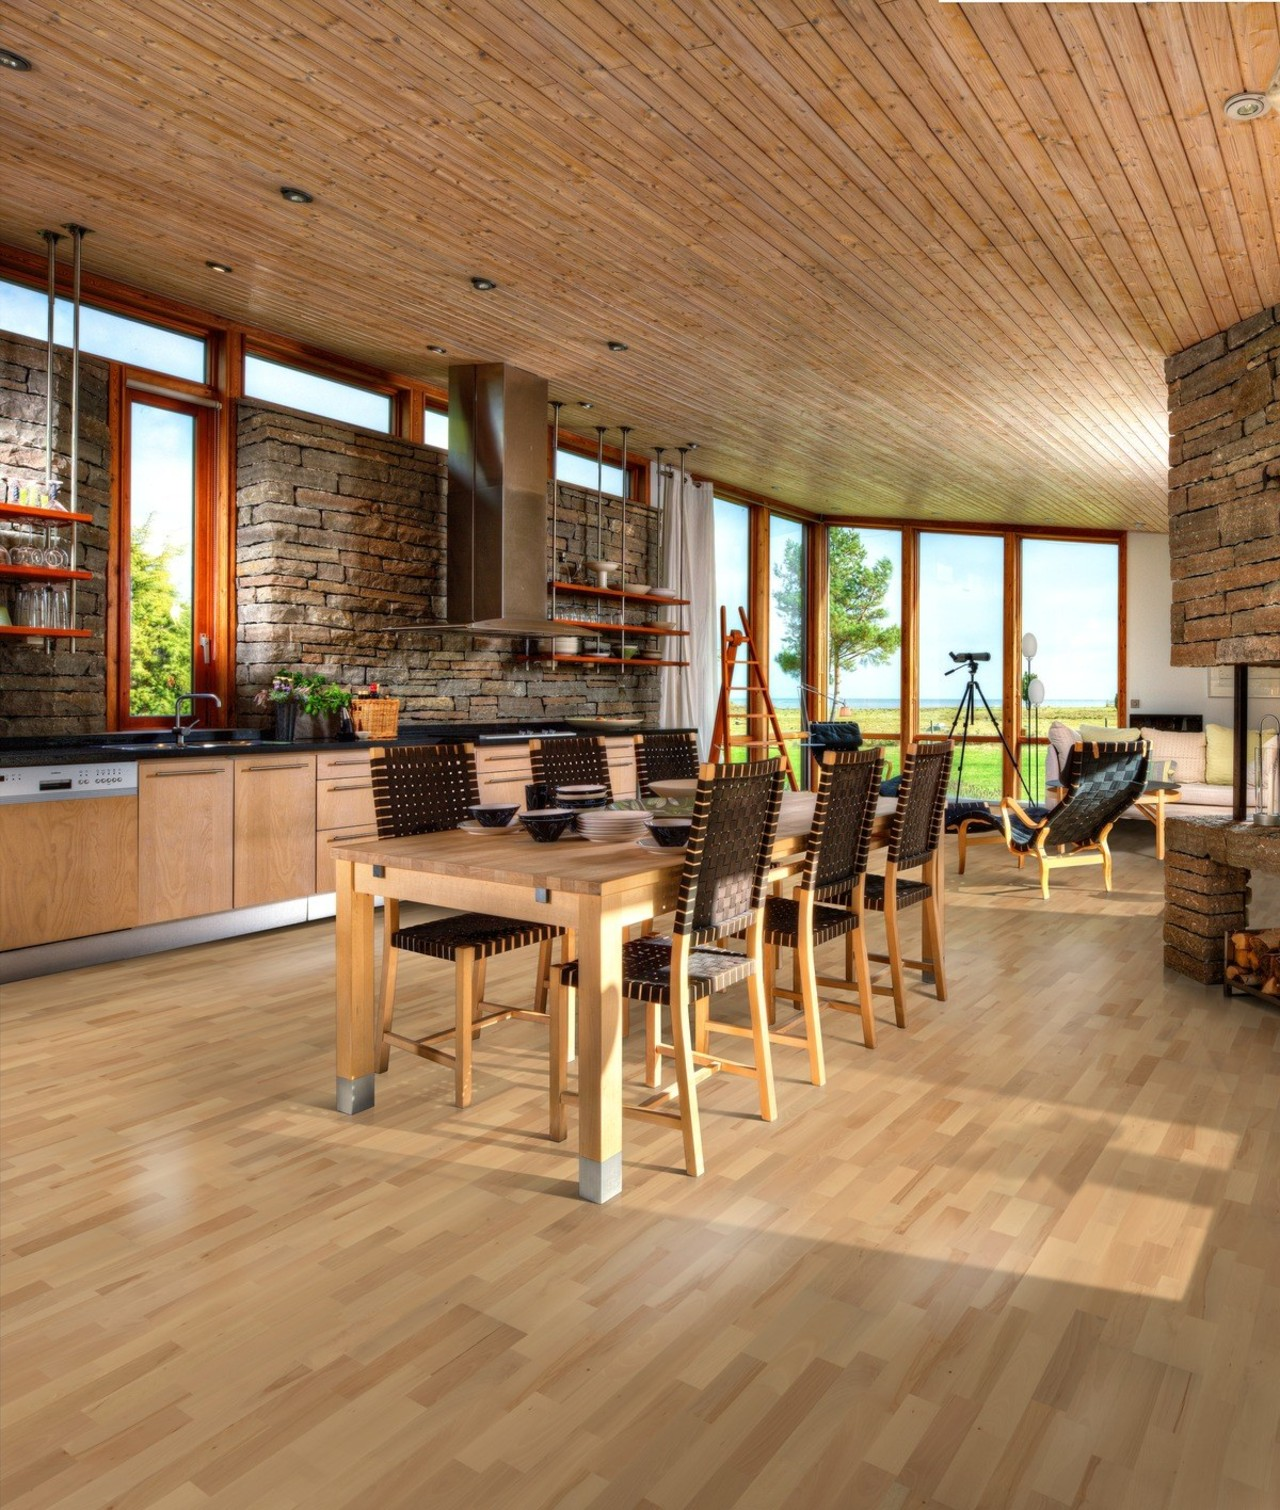 Beech Viborg is a floor that mixes the